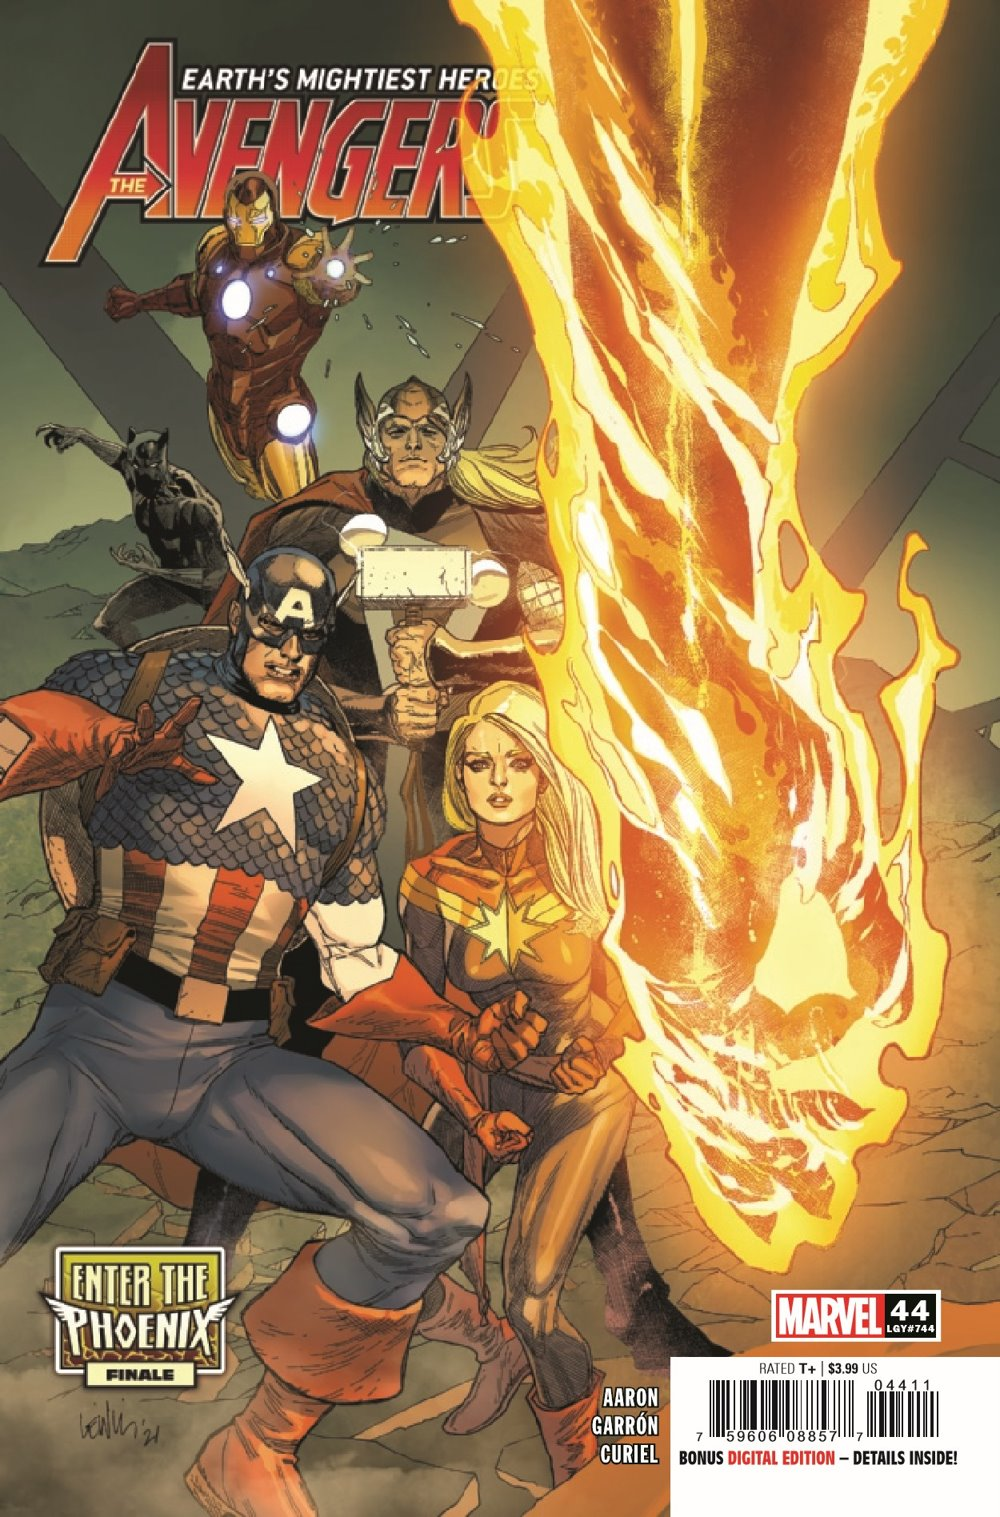 AVEN2018044_Preview-1 ComicList Previews: THE AVENGERS #44